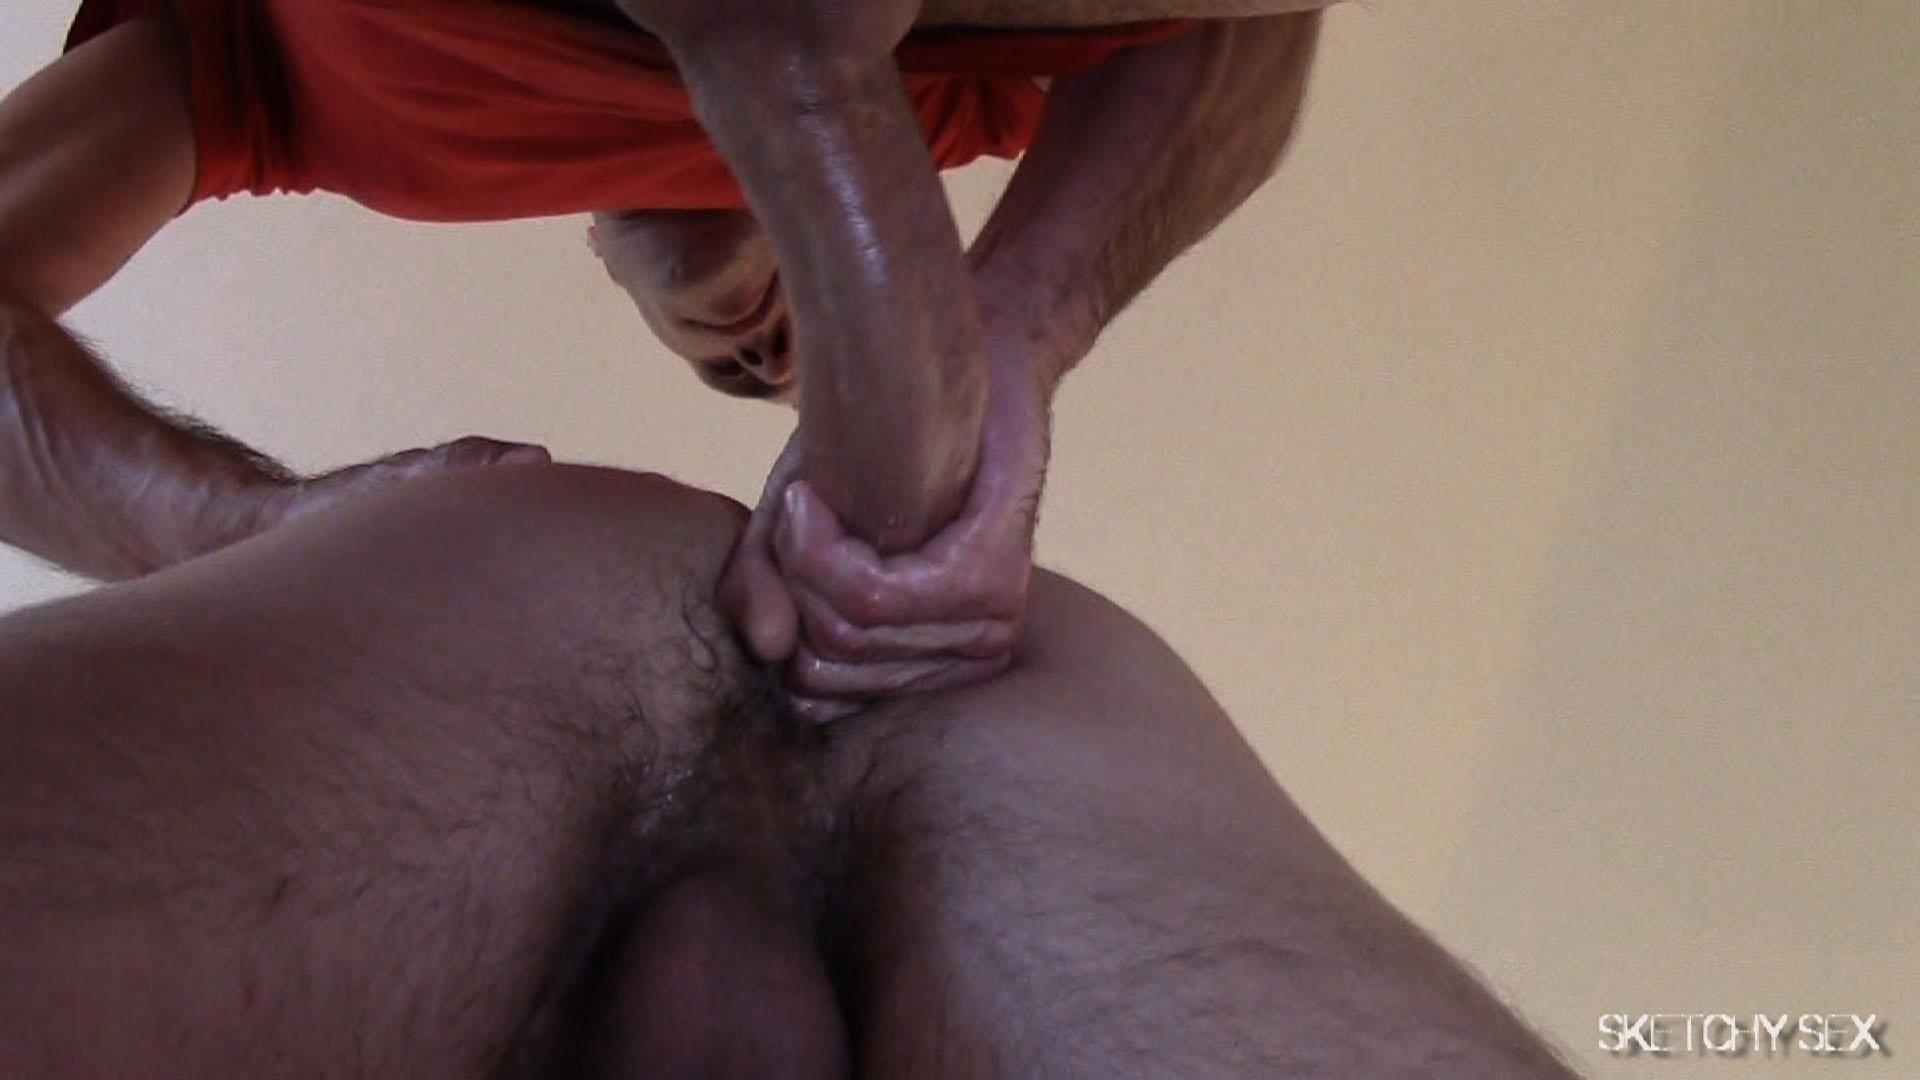 Sketchy-Sex-Nate-Getting-Fucked-Bareback-By-A-10-Inch-Craigslist-Cock-Amateur-Gay-Porn-08 Taking A 10